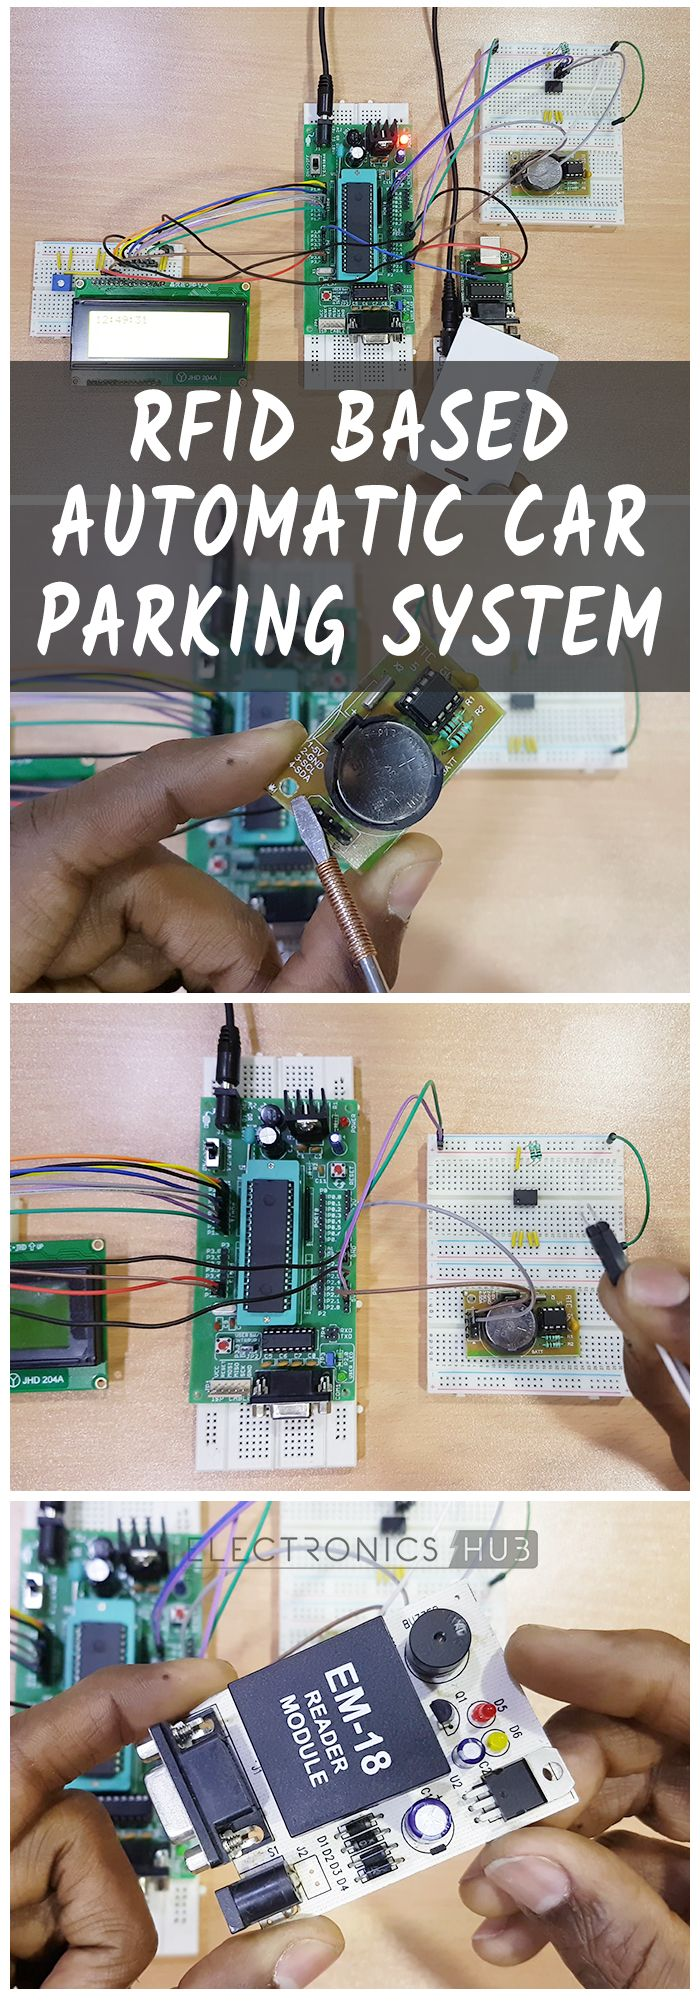 Rfid Based Car Parking System Fai Da Te Pinterest Electronics Access Control Using 8051 Electronic Circuits The Principle Of Operation Project Lies In Functioning Rtc And Eeprom